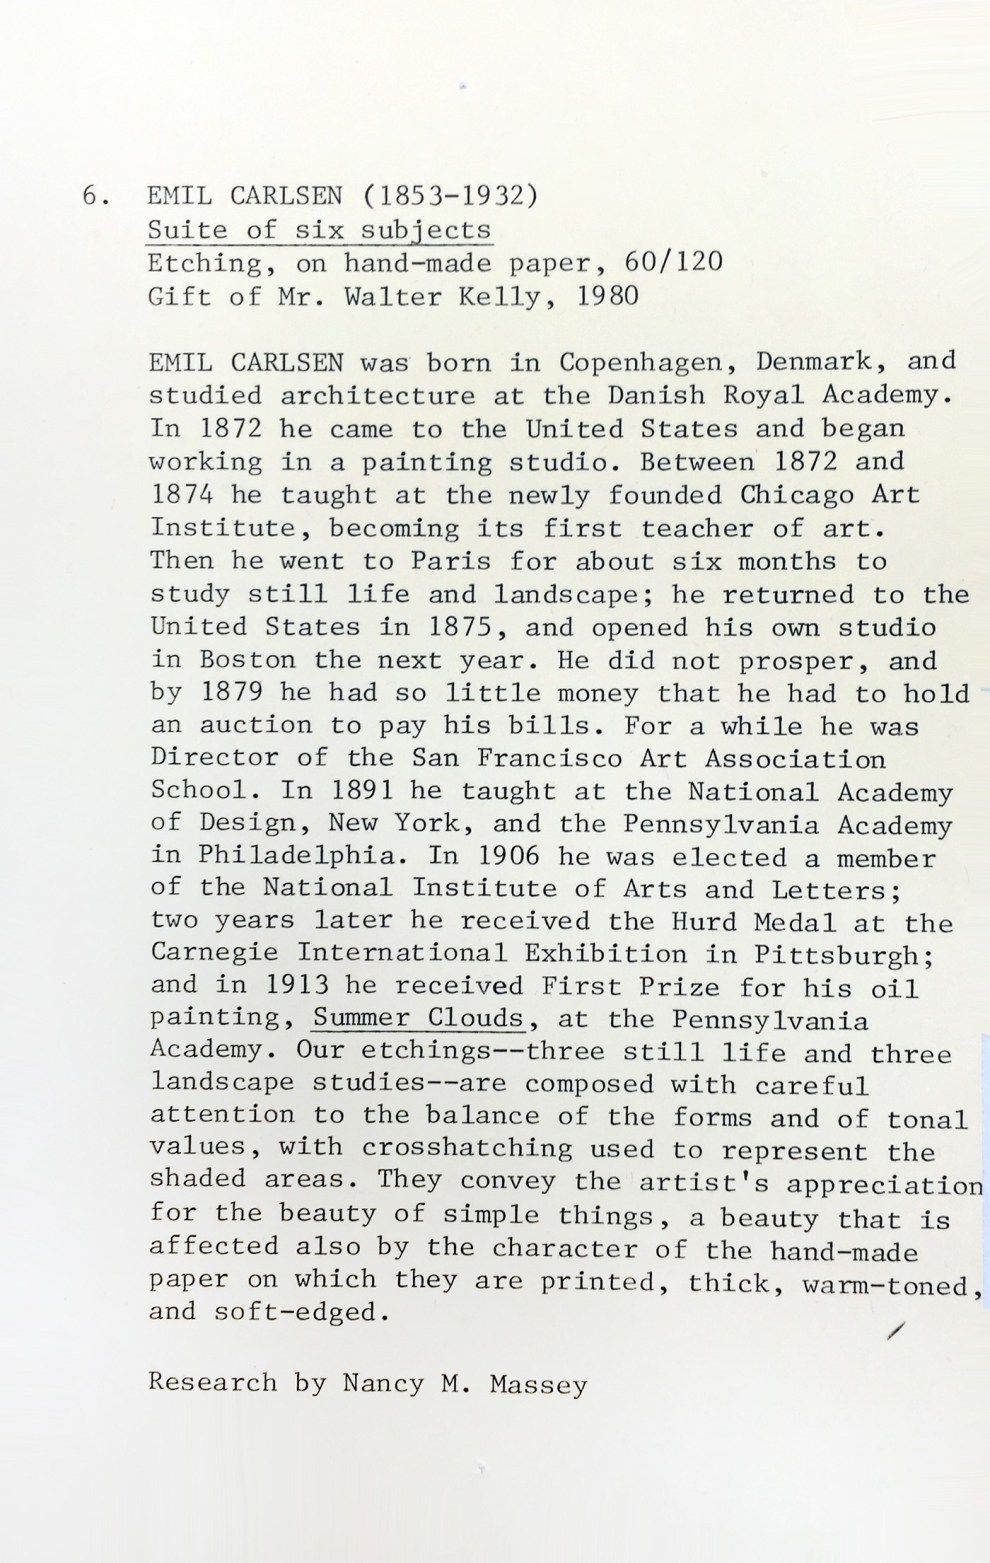 """Research on Emil Carlsen from Nancy M. Massey at the University of Louisville, KY for professor of Art History, Dario A. Coviing portfolio"", 1980"